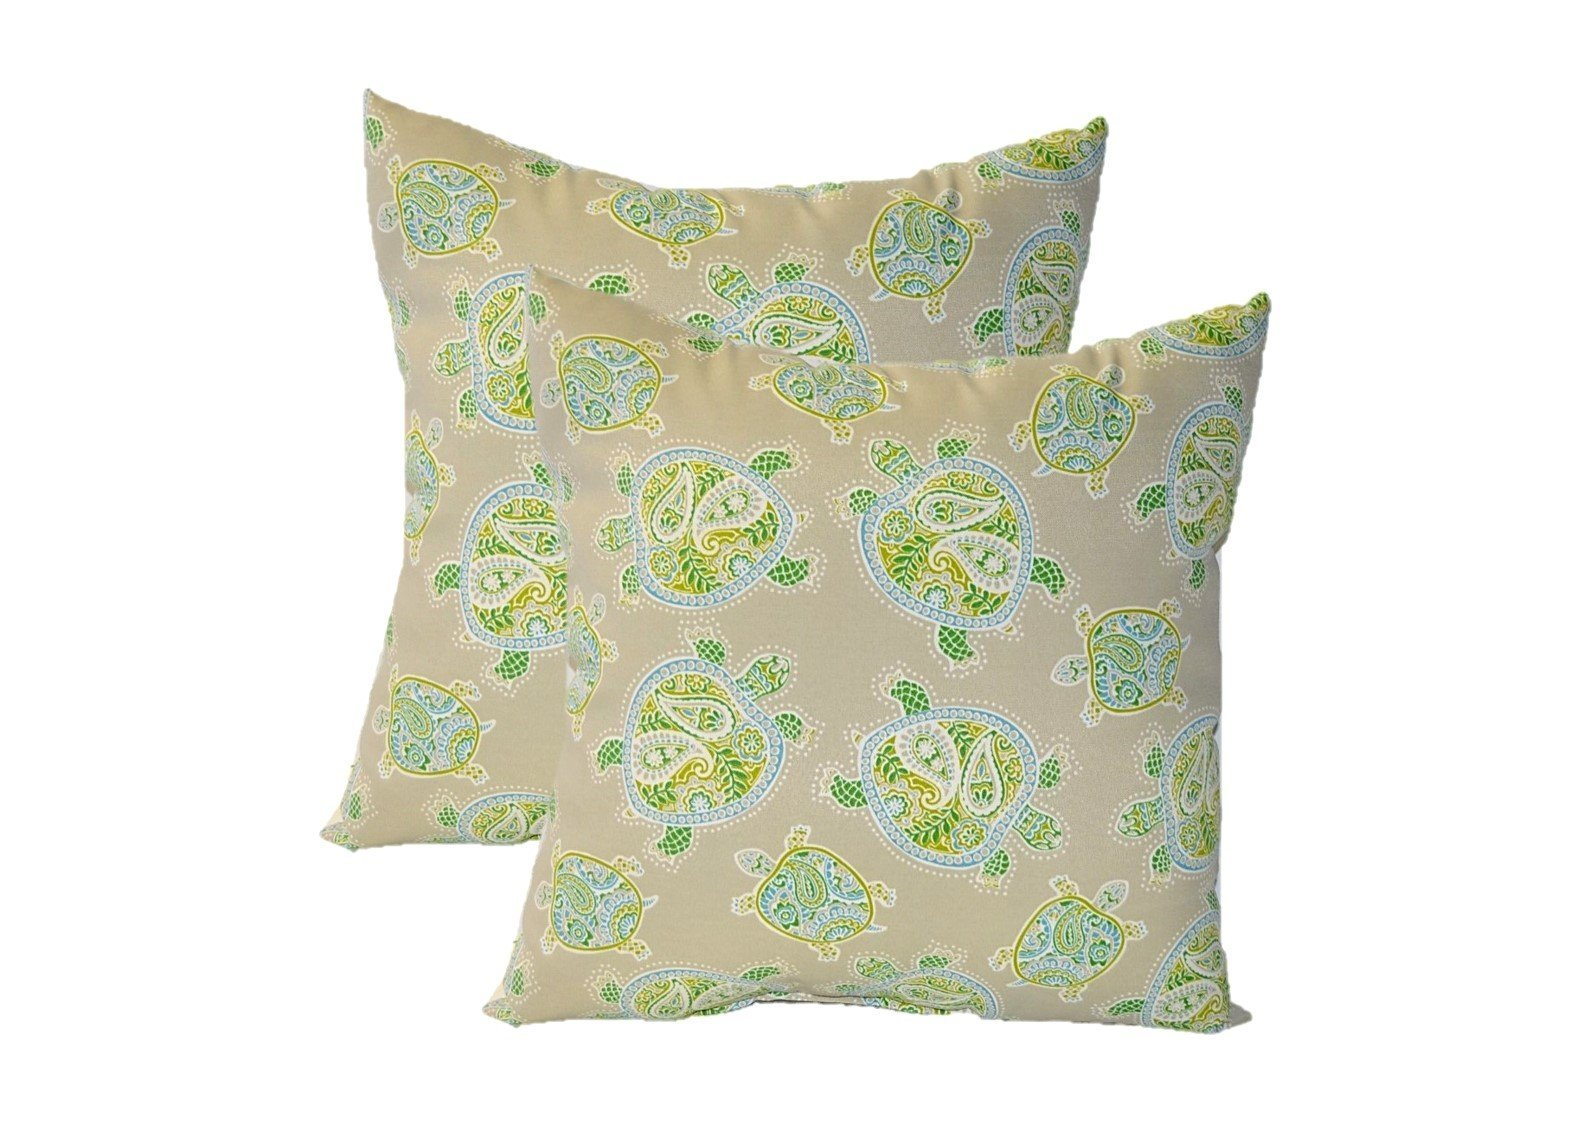 Set of 2 - Indoor / Outdoor Square Decorative Throw / Toss Pillows - Tommy Bahama Tranquil Turtles Jungle - Tan, Blue, Green - Choose Size (22'')